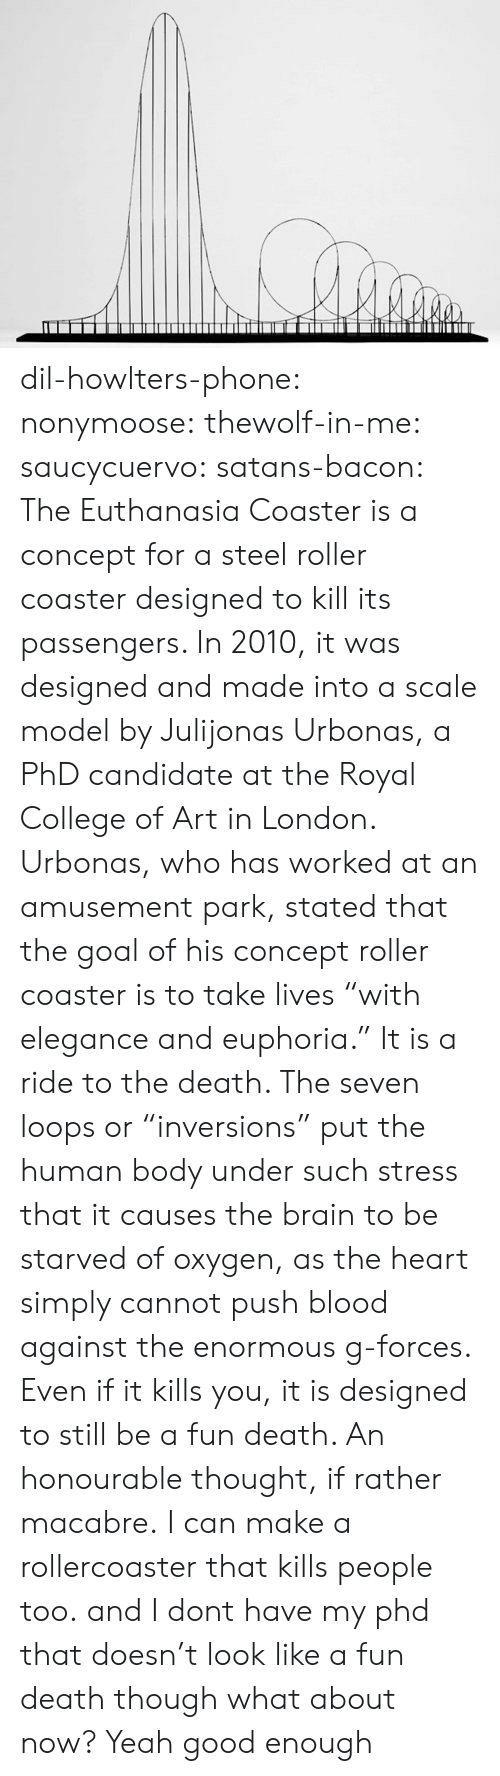 "College, Phone, and Target: dil-howlters-phone:  nonymoose:  thewolf-in-me:  saucycuervo:  satans-bacon: The Euthanasia Coaster is a concept for a steel roller coaster designed to kill its passengers. In 2010, it was designed and made into a scale model by Julijonas Urbonas, a PhD candidate at the Royal College of Art in London. Urbonas, who has worked at an amusement park, stated that the goal of his concept roller coaster is to take lives ""with elegance and euphoria."" It is a ride to the death. The seven loops or ""inversions"" put the human body under such stress that it causes the brain to be starved of oxygen, as the heart simply cannot push blood against the enormous g-forces. Even if it kills you, it is designed to still be a fun death. An honourable thought, if rather macabre. I can make a rollercoaster that kills people too. and I dont have my phd   that doesn't look like a fun death though   what about now?   Yeah good enough"